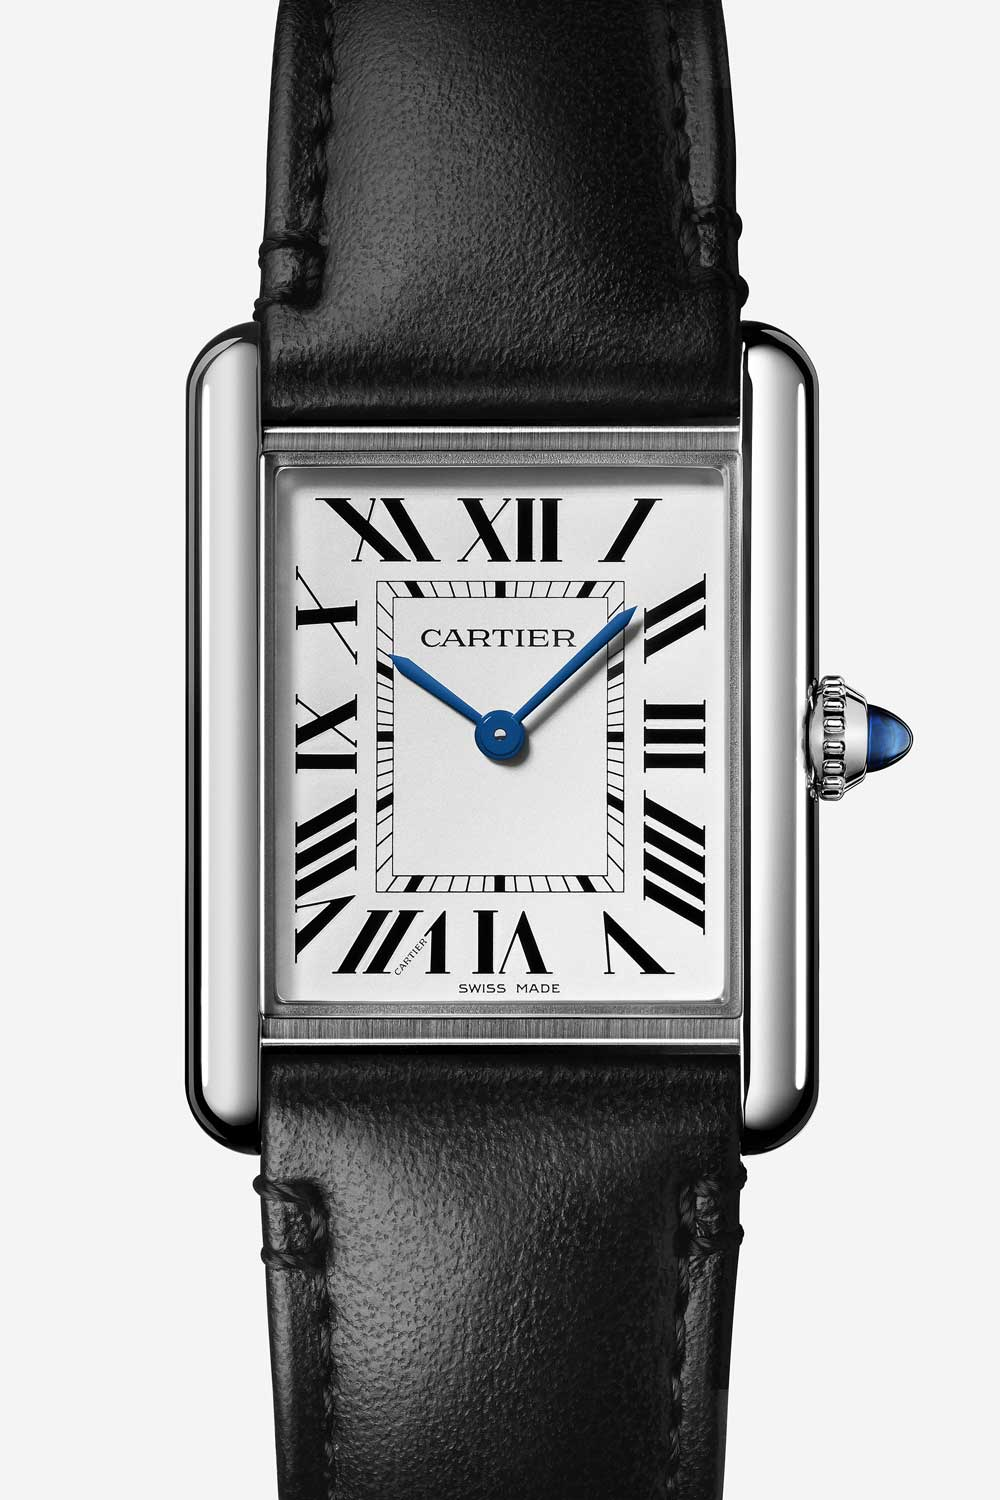 The delicate and invisible perforation of Roman numerals on this watch allow solar energy to reach the photovoltaic cells hidden under the dial.There is no battery in the Tank Must and it will only need to be serviced every 16 years